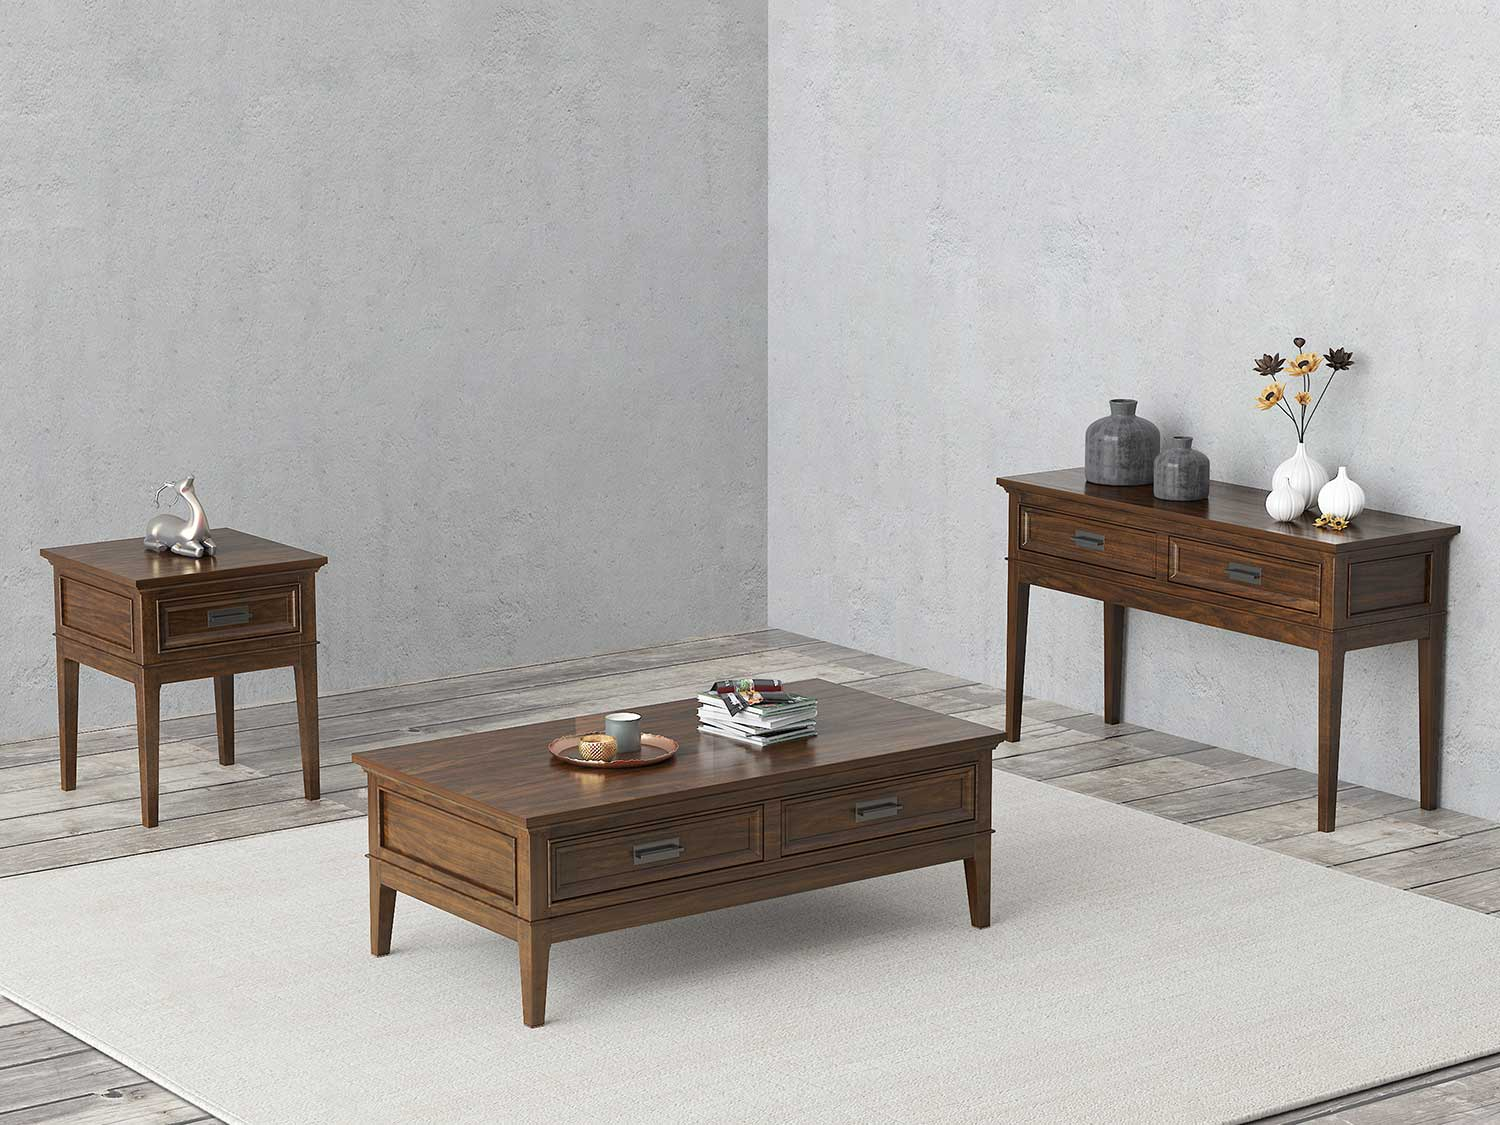 Homelegance Frazier Park Collection - Brown Cherry